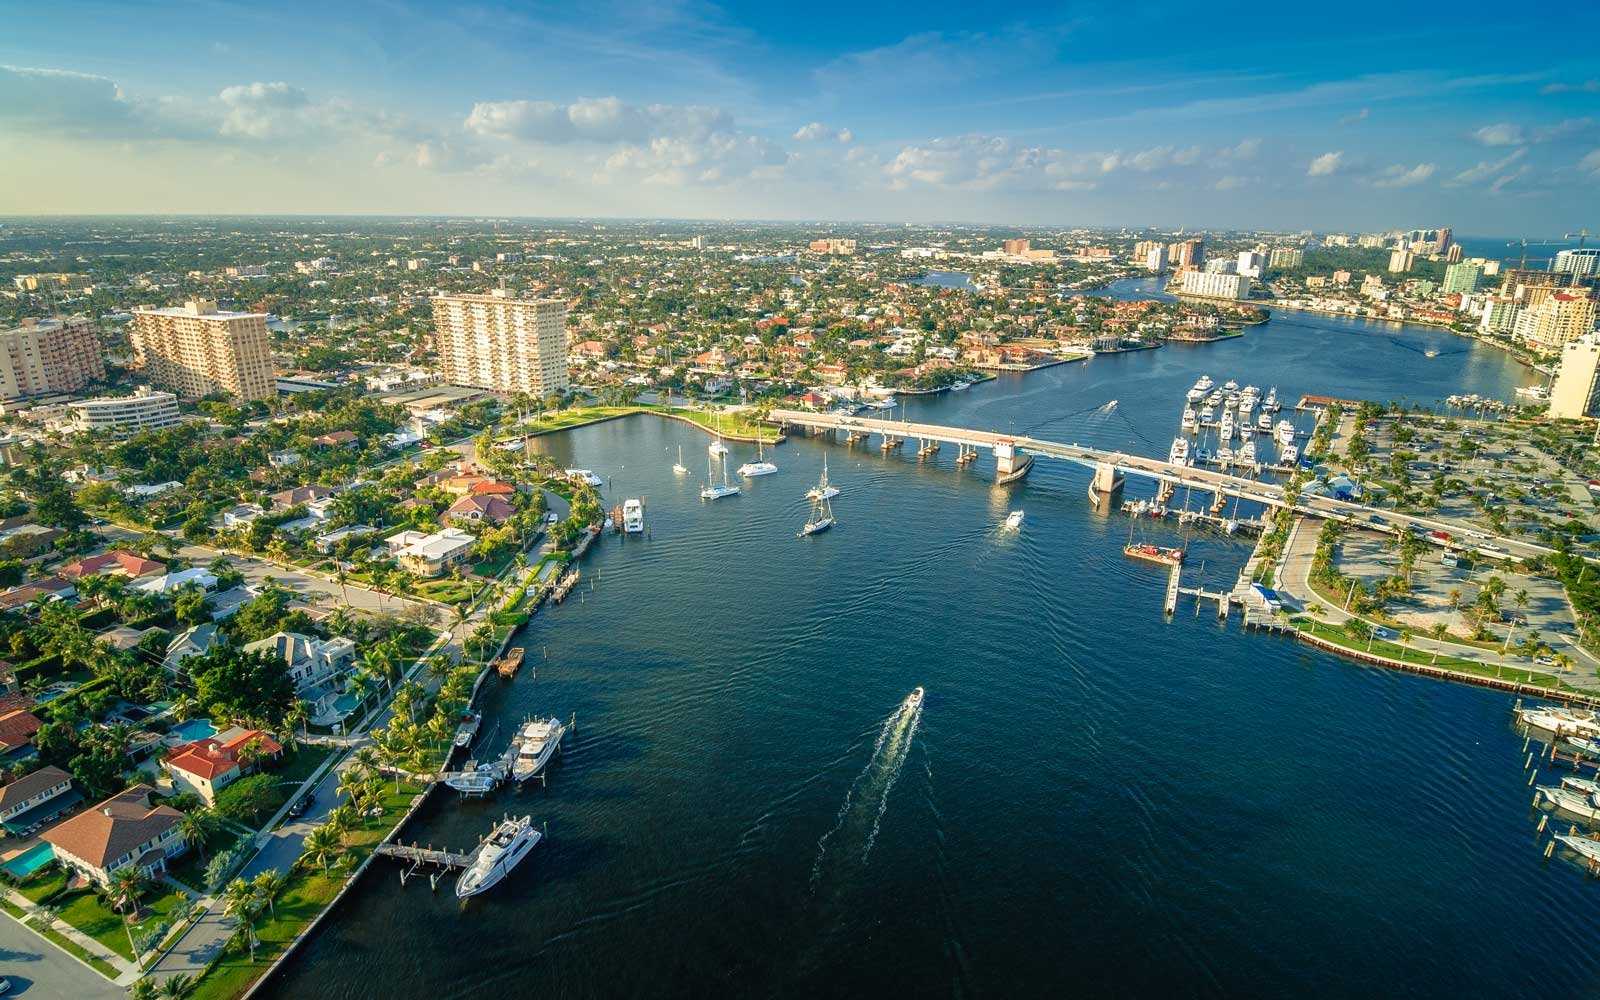 Fort Lauderdale, Florida Intercoastal waterway